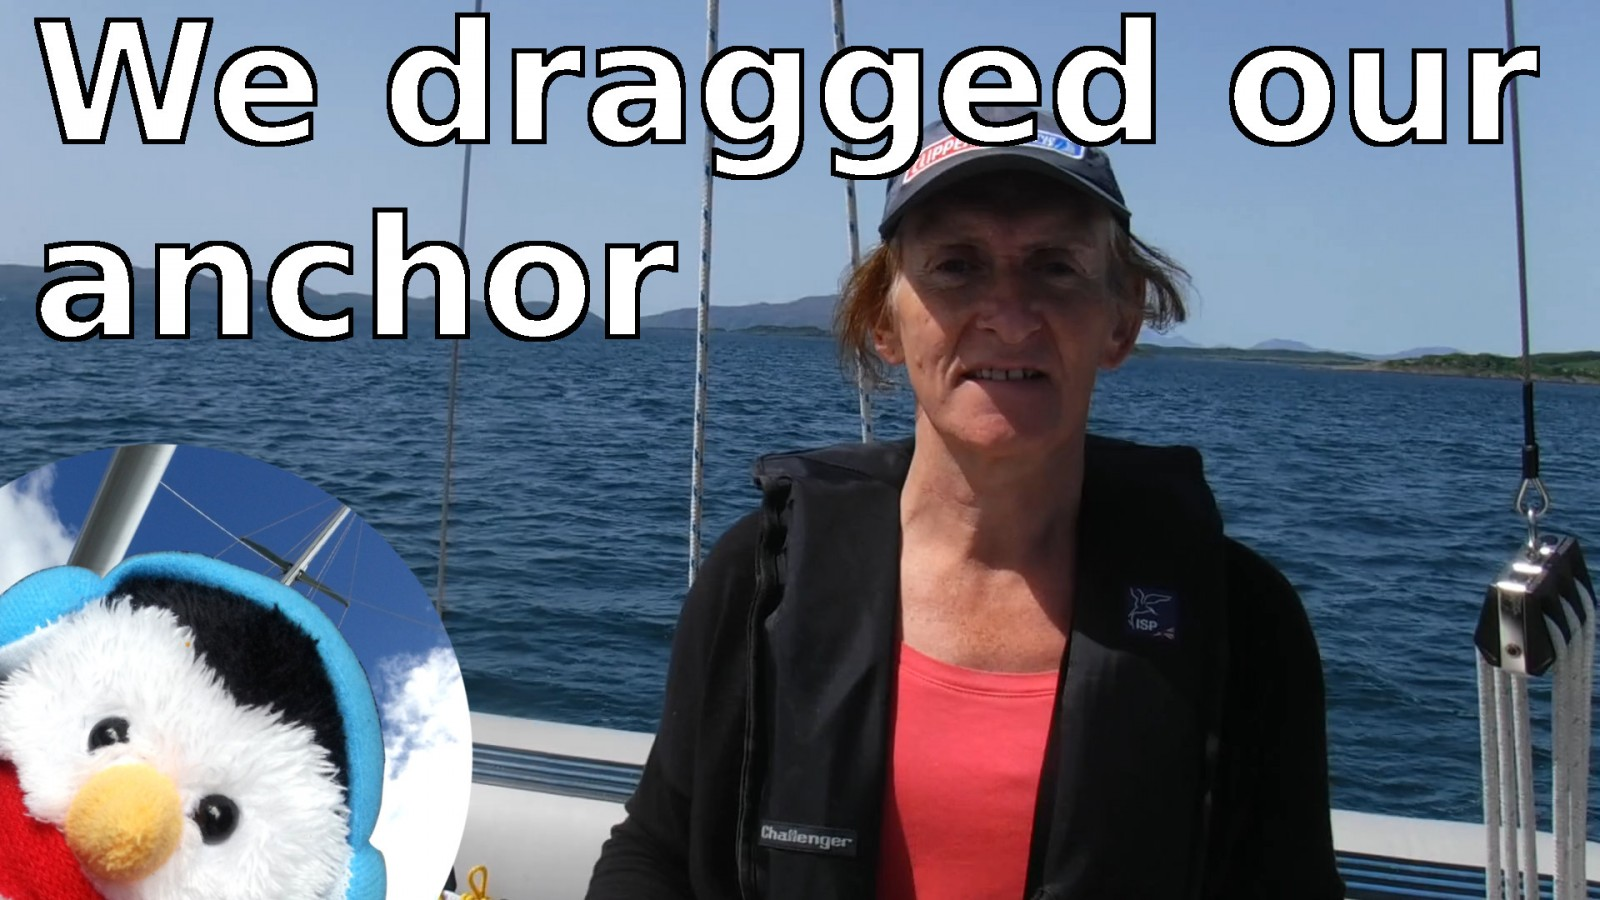 Watch our 'We dragged our anchor' video and add comments ect.